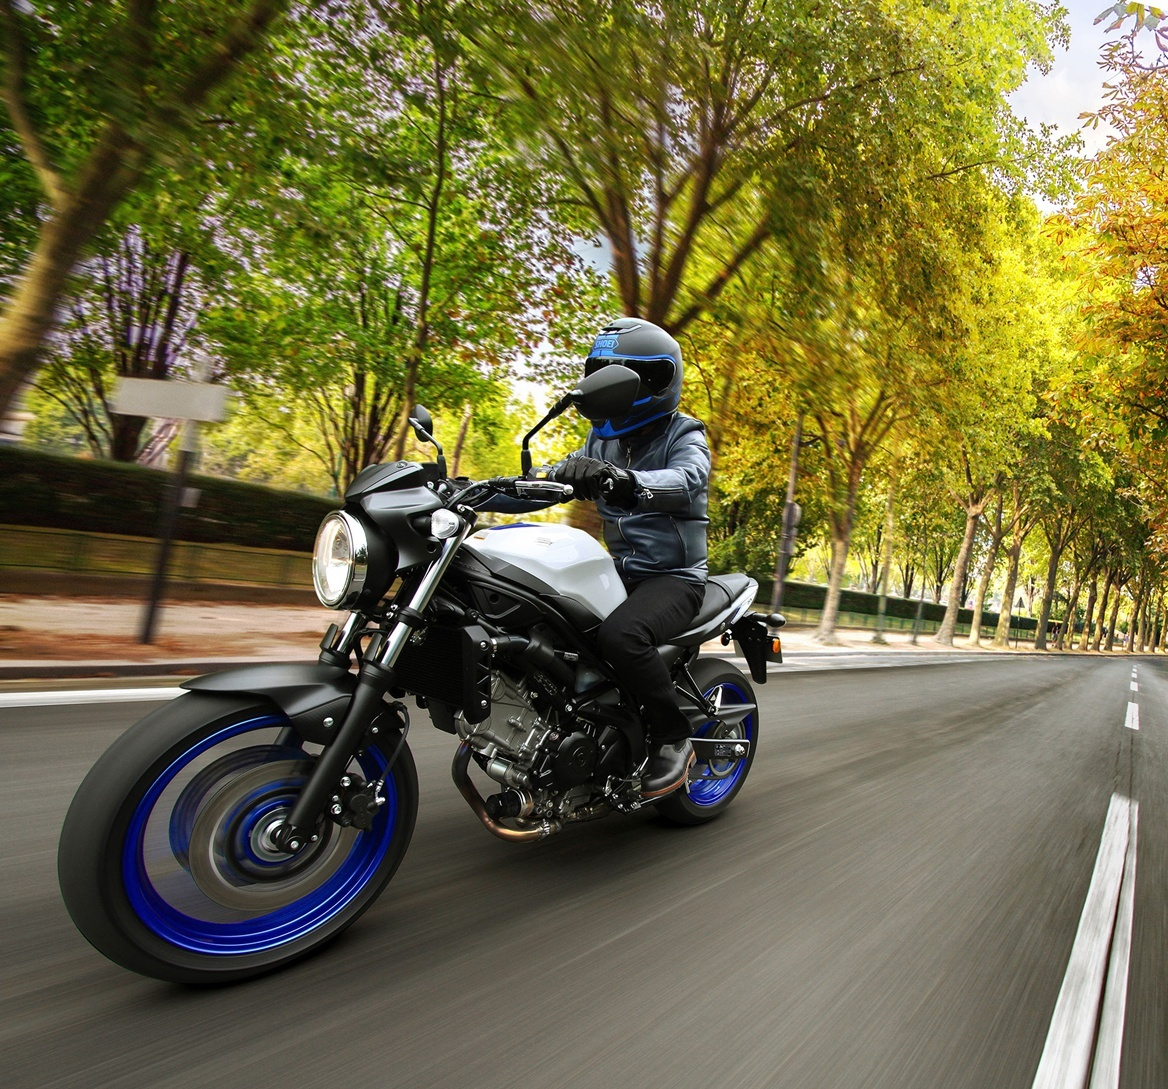 2017 Suzuki SV650 in Phoenix, Arizona